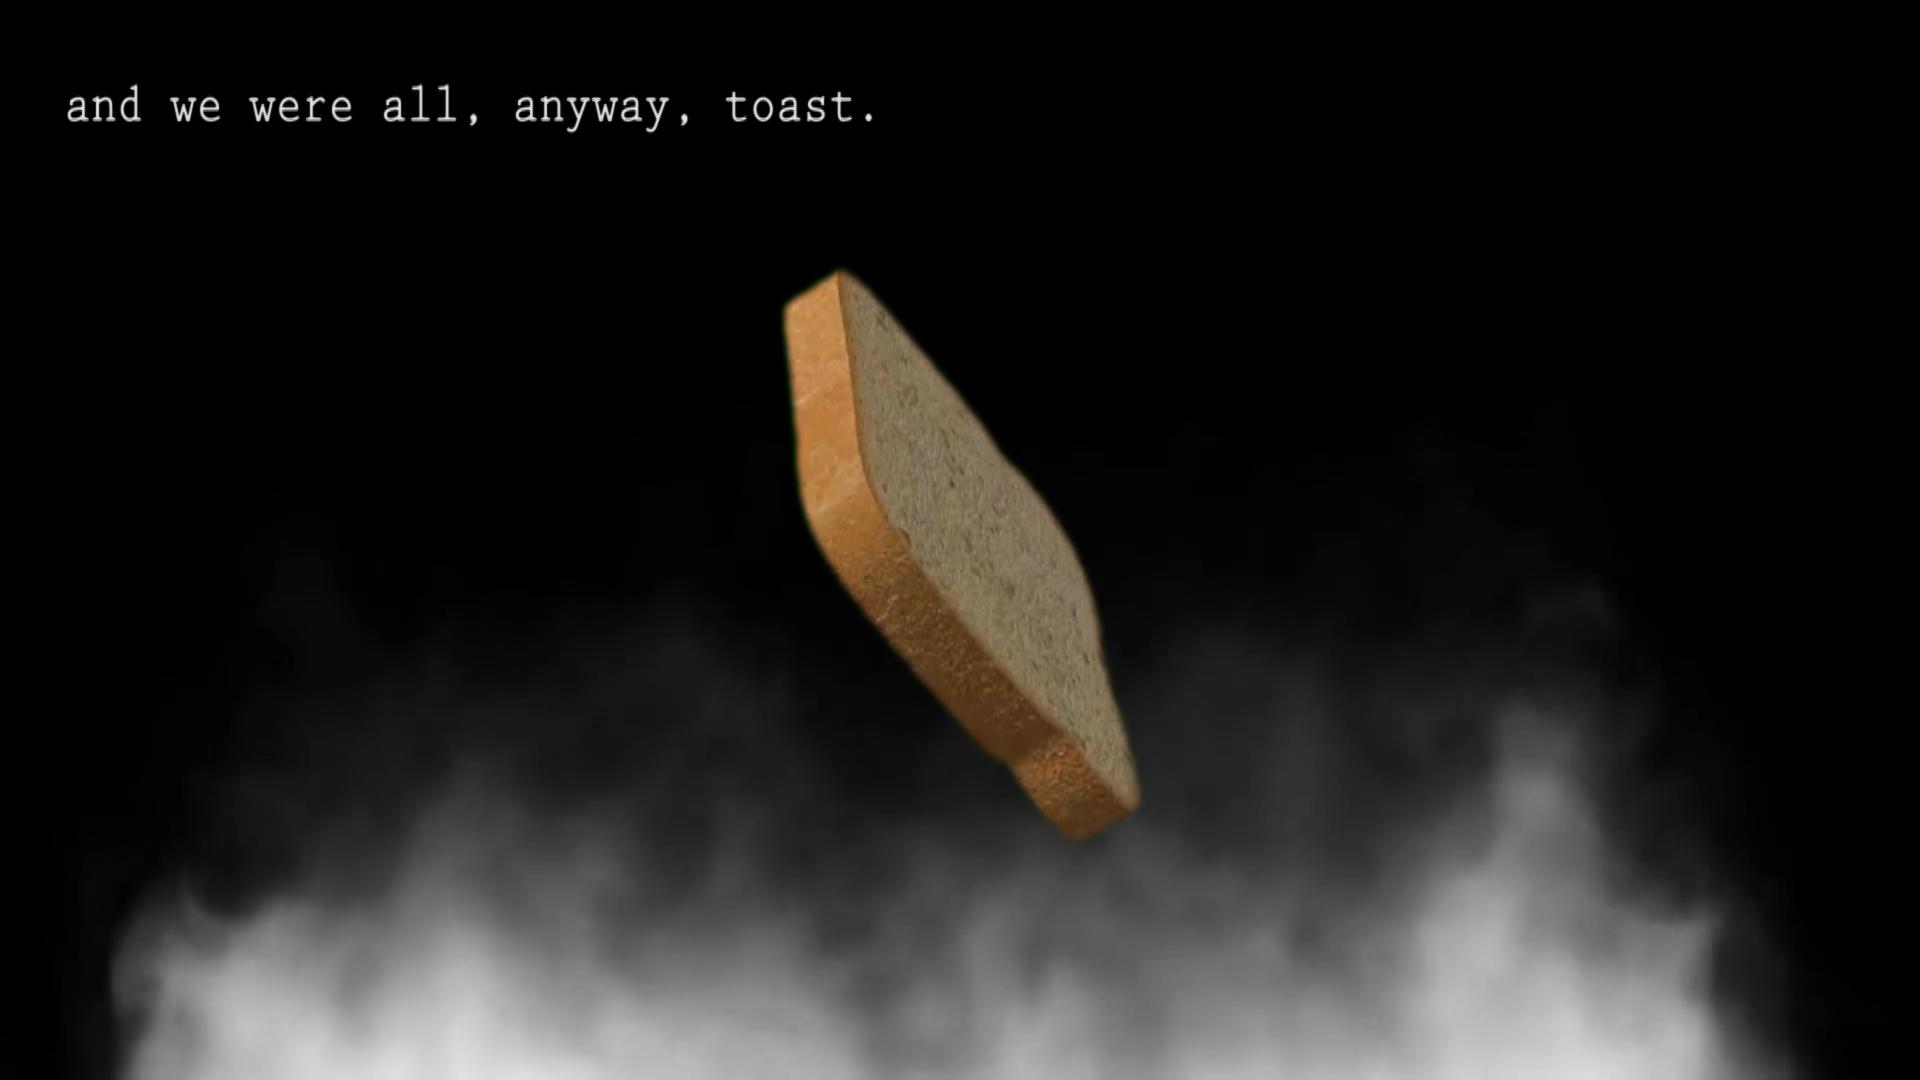 """A digitally rendered image of a piece of sandwich bread appears in front of a smoky black-and-white background. White text in the upper-left corner reads """"and we were all, anyway, toast."""""""